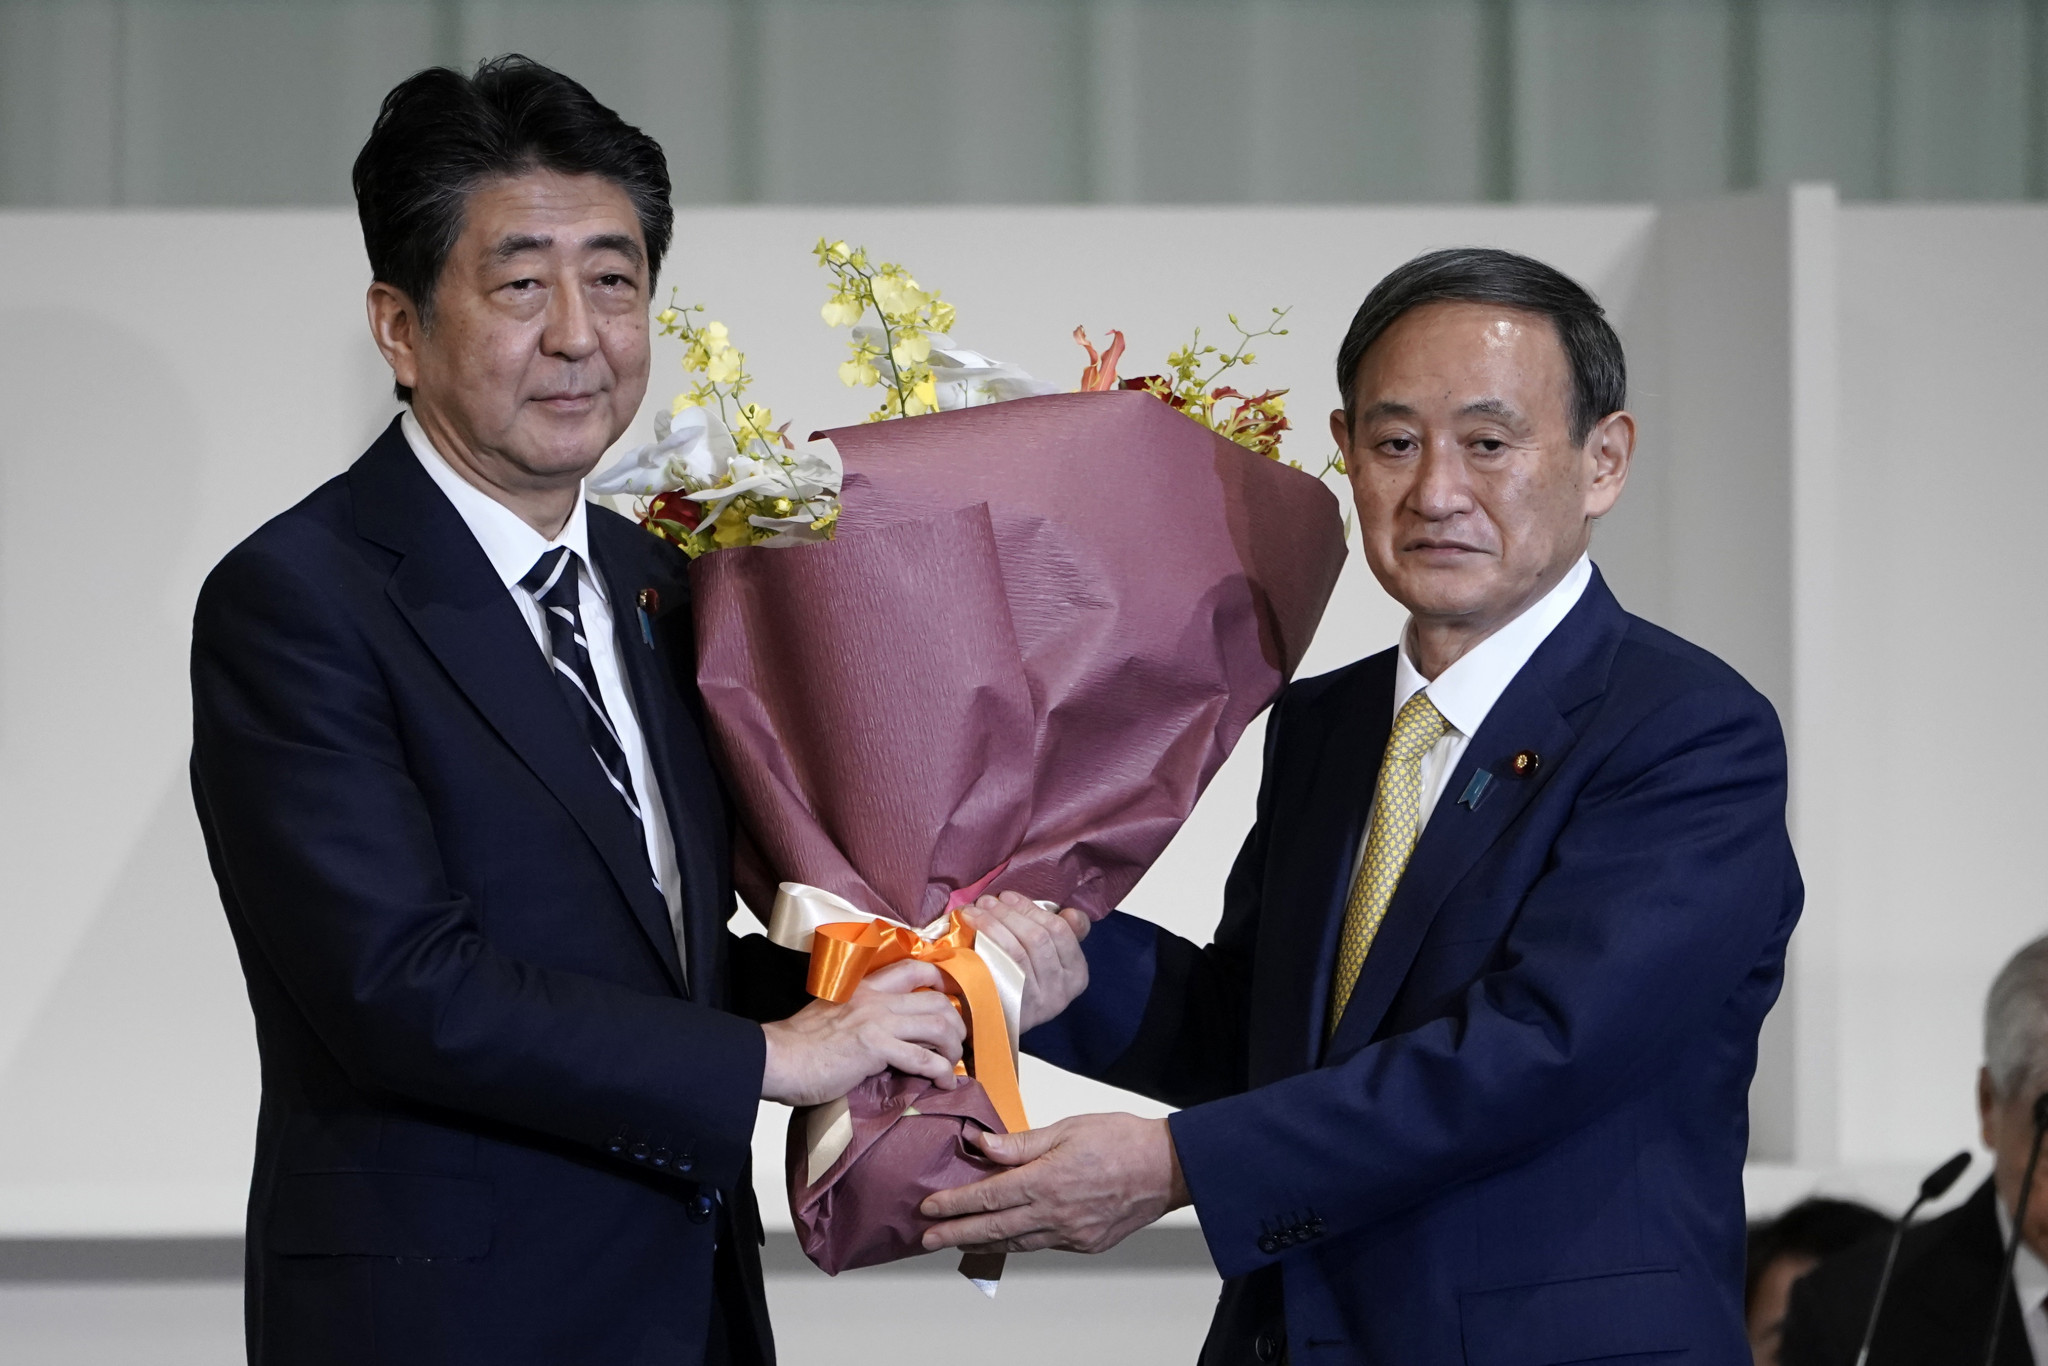 Shinzō Abe, left, has been replaced by Yoshihide Suga, right, as Japanese Prime Minister ©Getty Images